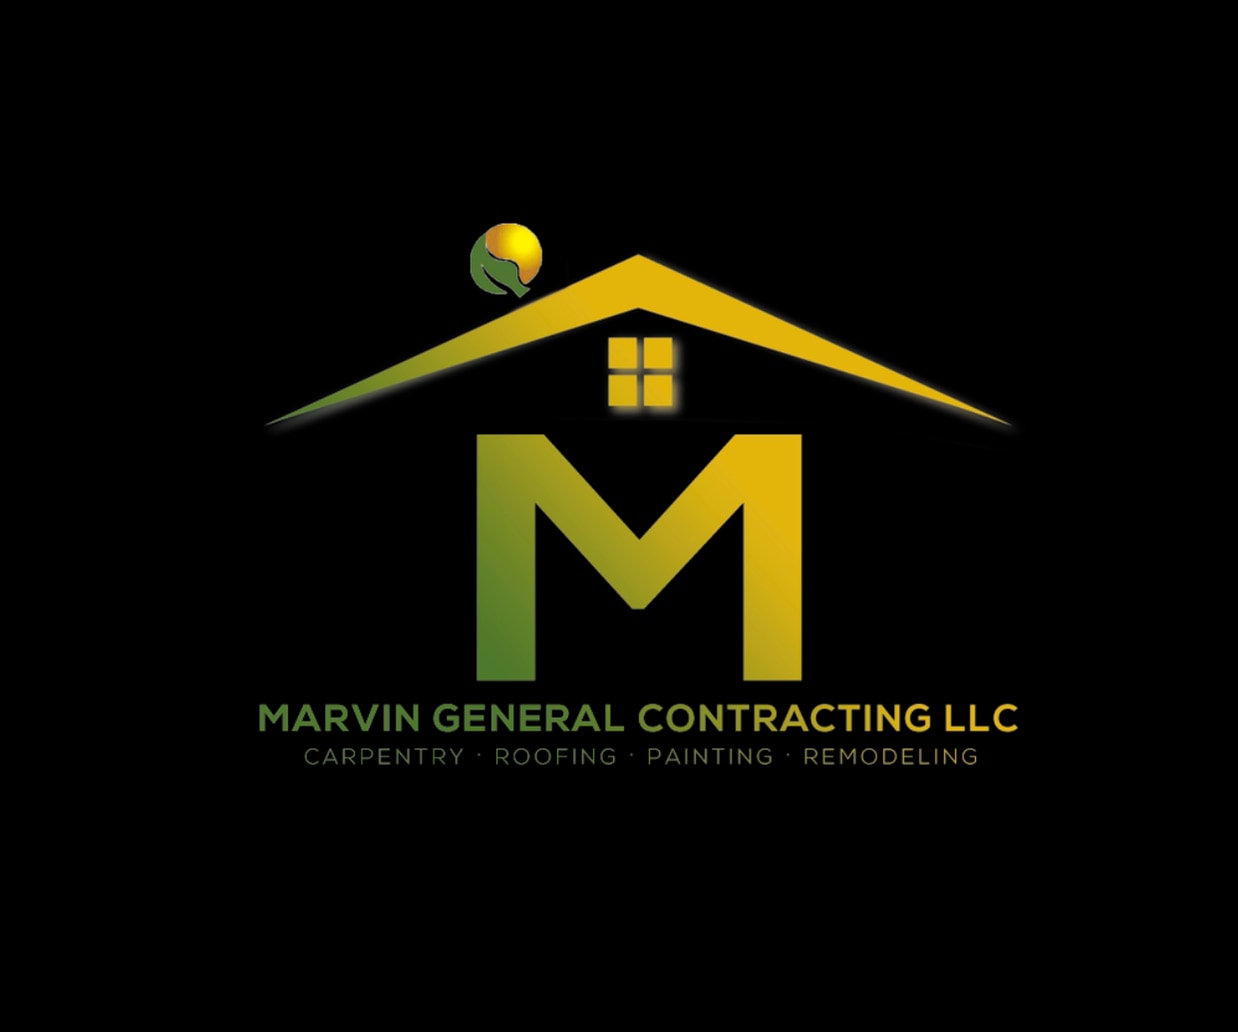 Marvin General Contracting, LLC